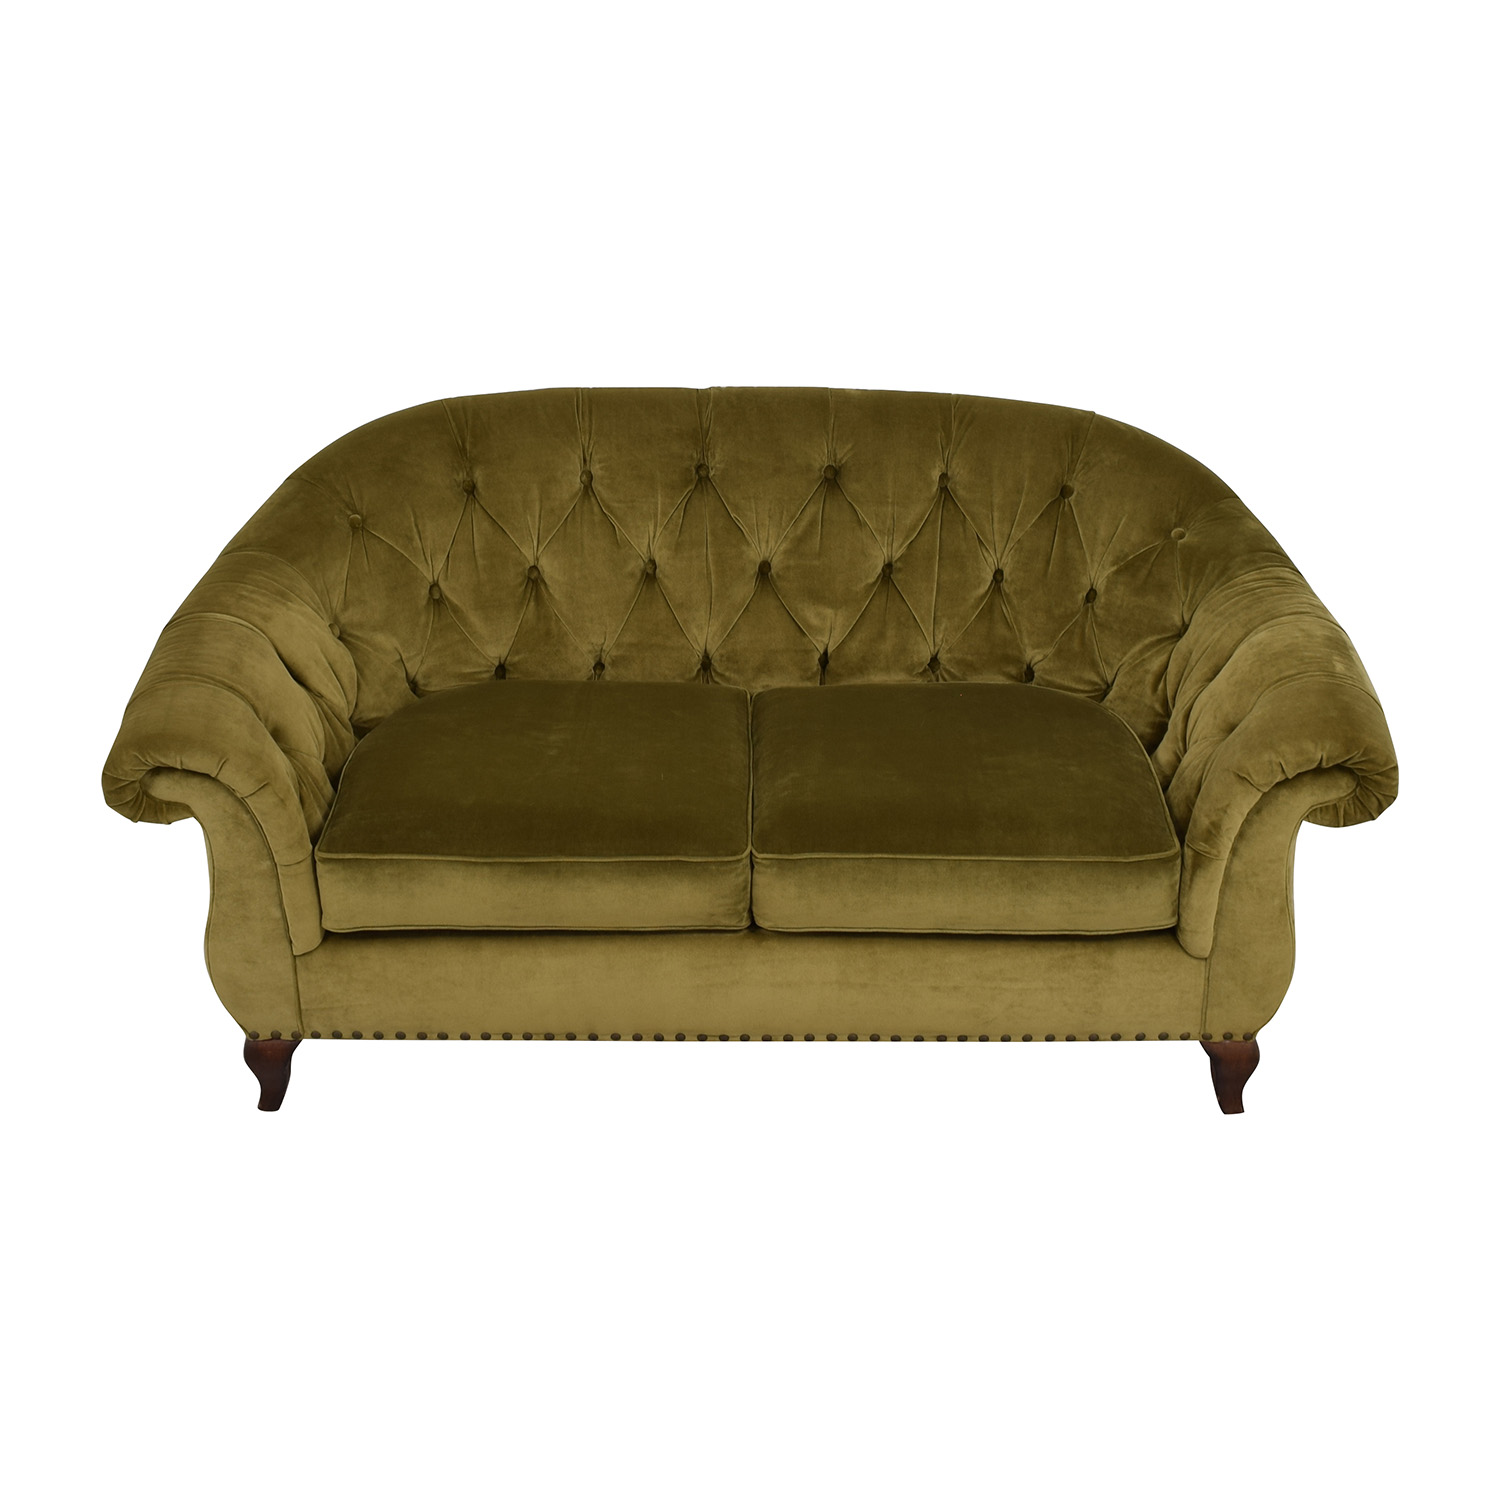 Pleasant 30 Off Ralph Lauren Home Ralph Lauren Green Velvet Loveseat Sofas Andrewgaddart Wooden Chair Designs For Living Room Andrewgaddartcom